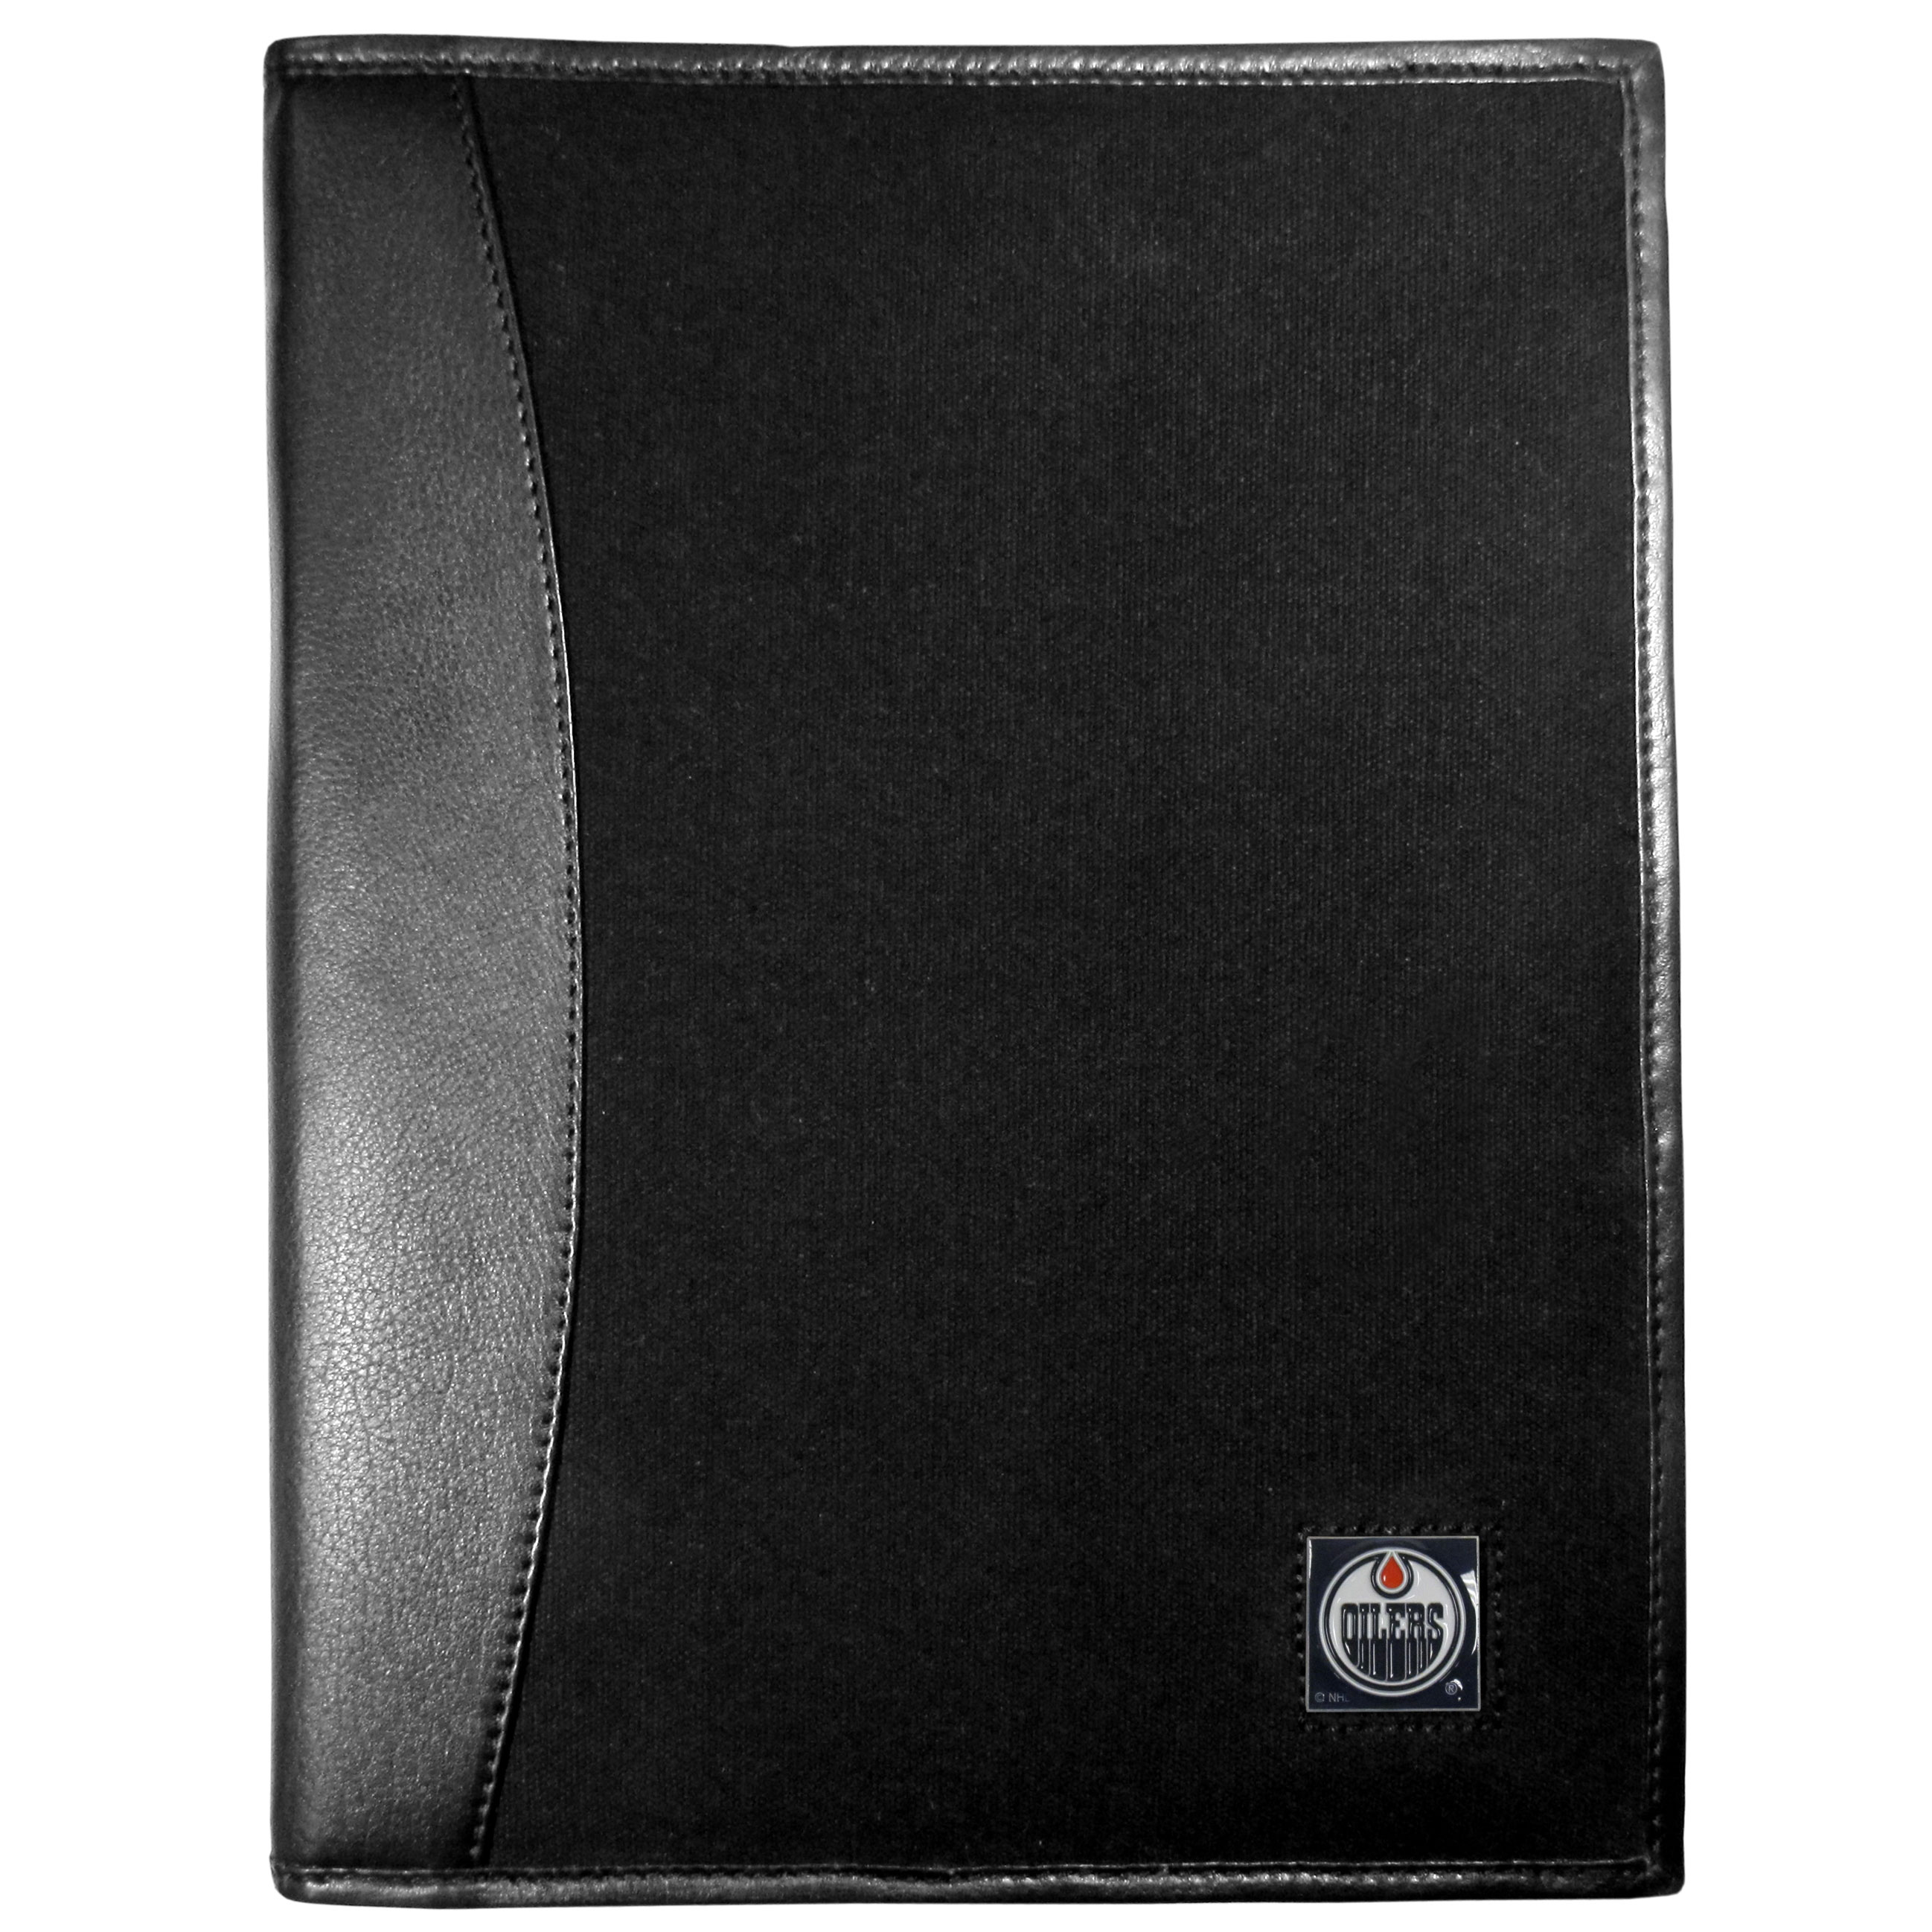 Edmonton Oilers Leather and Canvas Padfolio - Our leather and canvas padfolio perfectly blends form and function. The attractive portfolio is bound in fine grain leather with an attractive canvas finish and the interior is a soft nylon. This high quality business accessory also features a fully cast metal Edmonton Oilers emblem that is subtly set in the corner of the organizer. It is packed with features like 6 card slots for badges, business cards, hotel keys or credit cards and ID with a large pocket for loose papers and a writing tablet slot making it a must-have for the professional on the go.